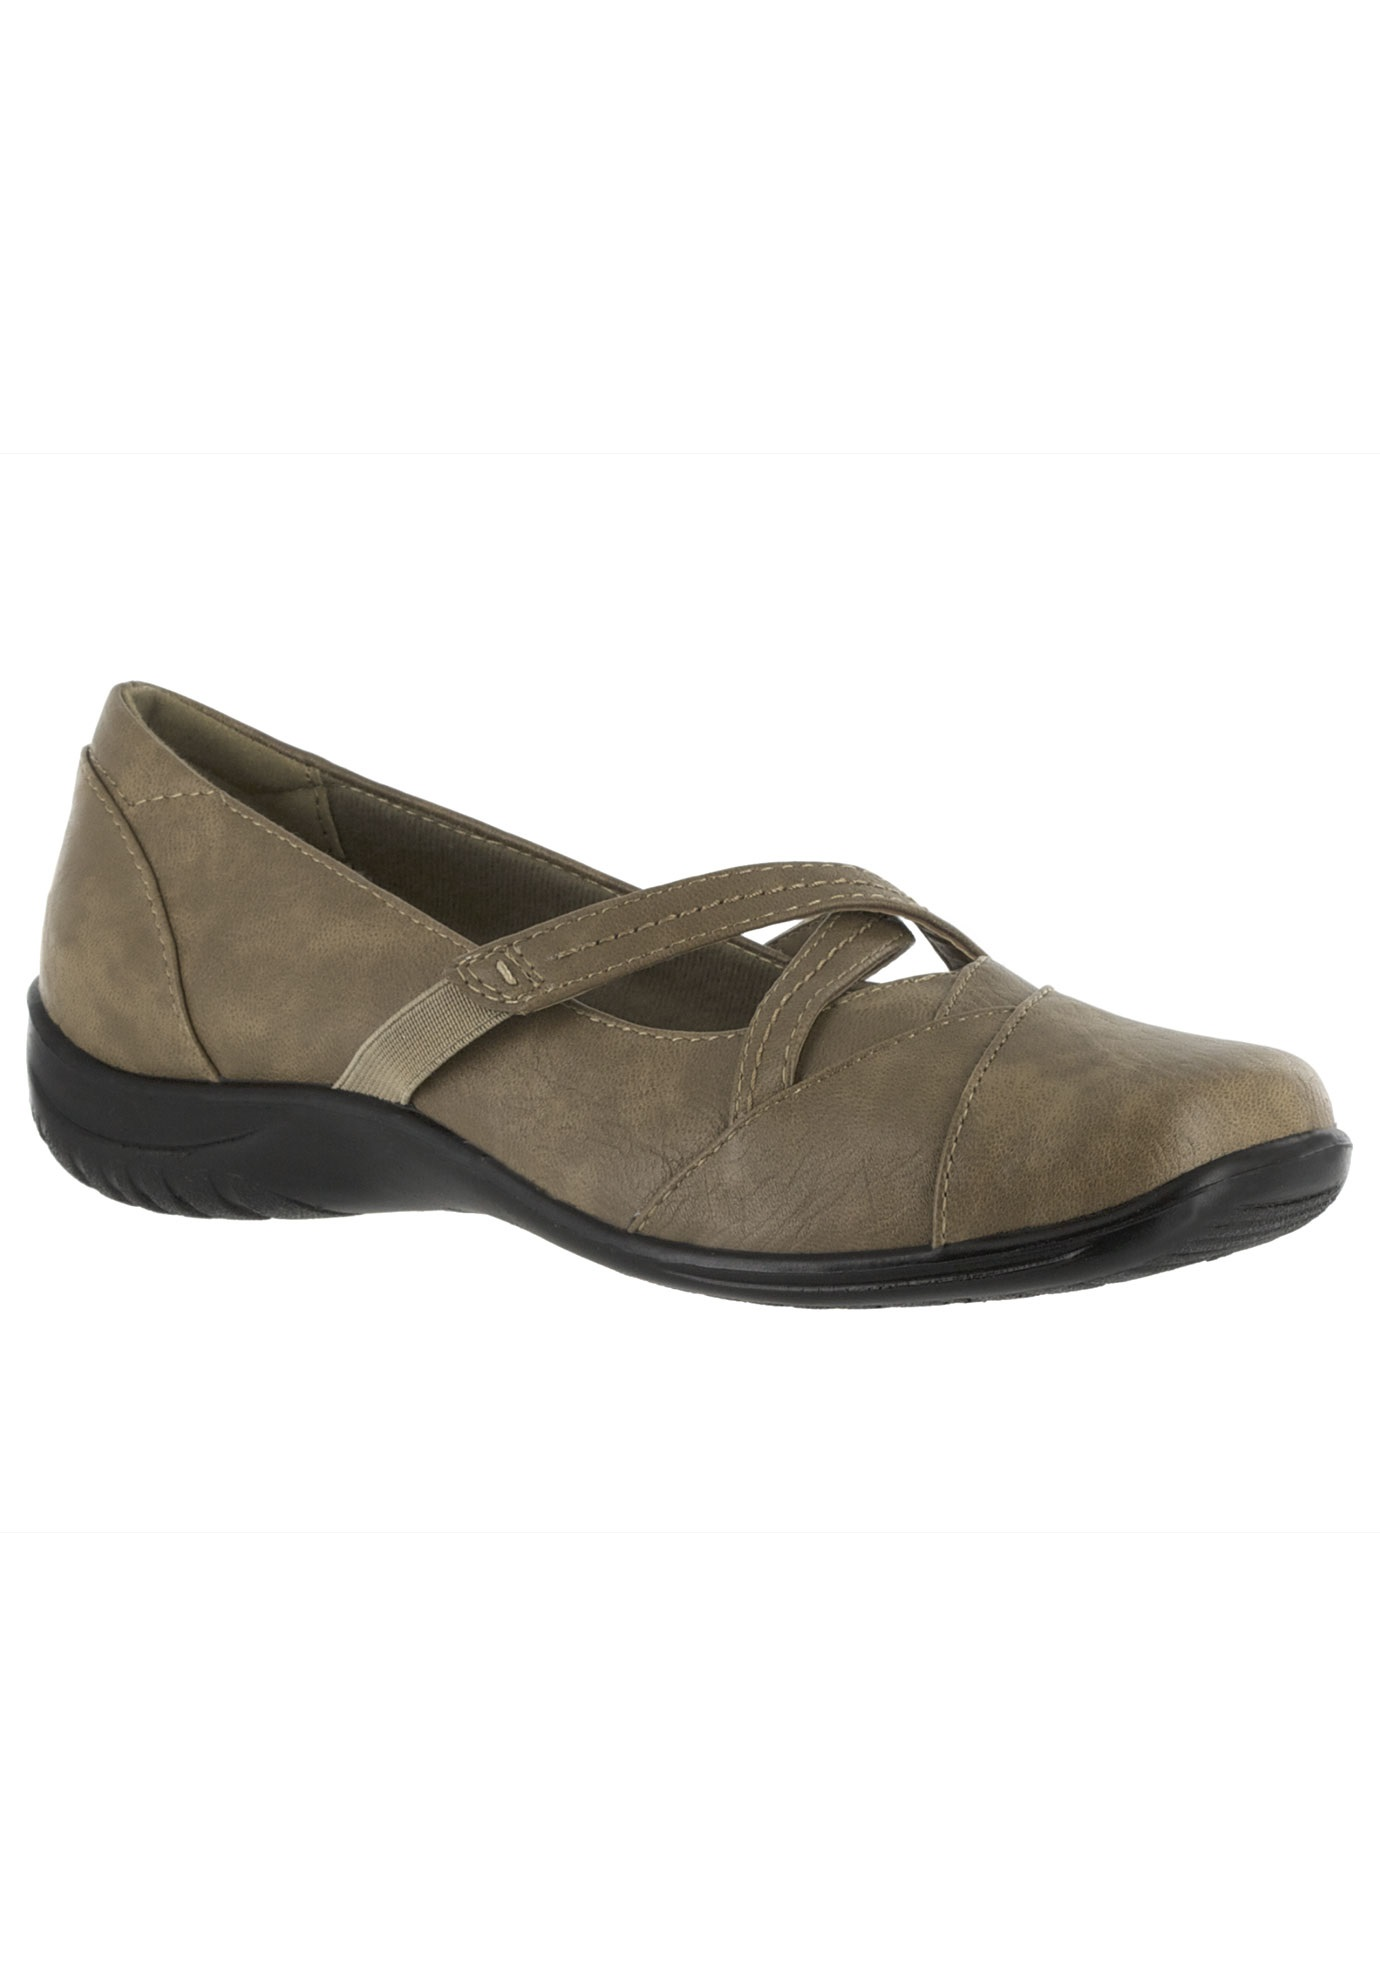 Marcie Flats by Easy Street®,